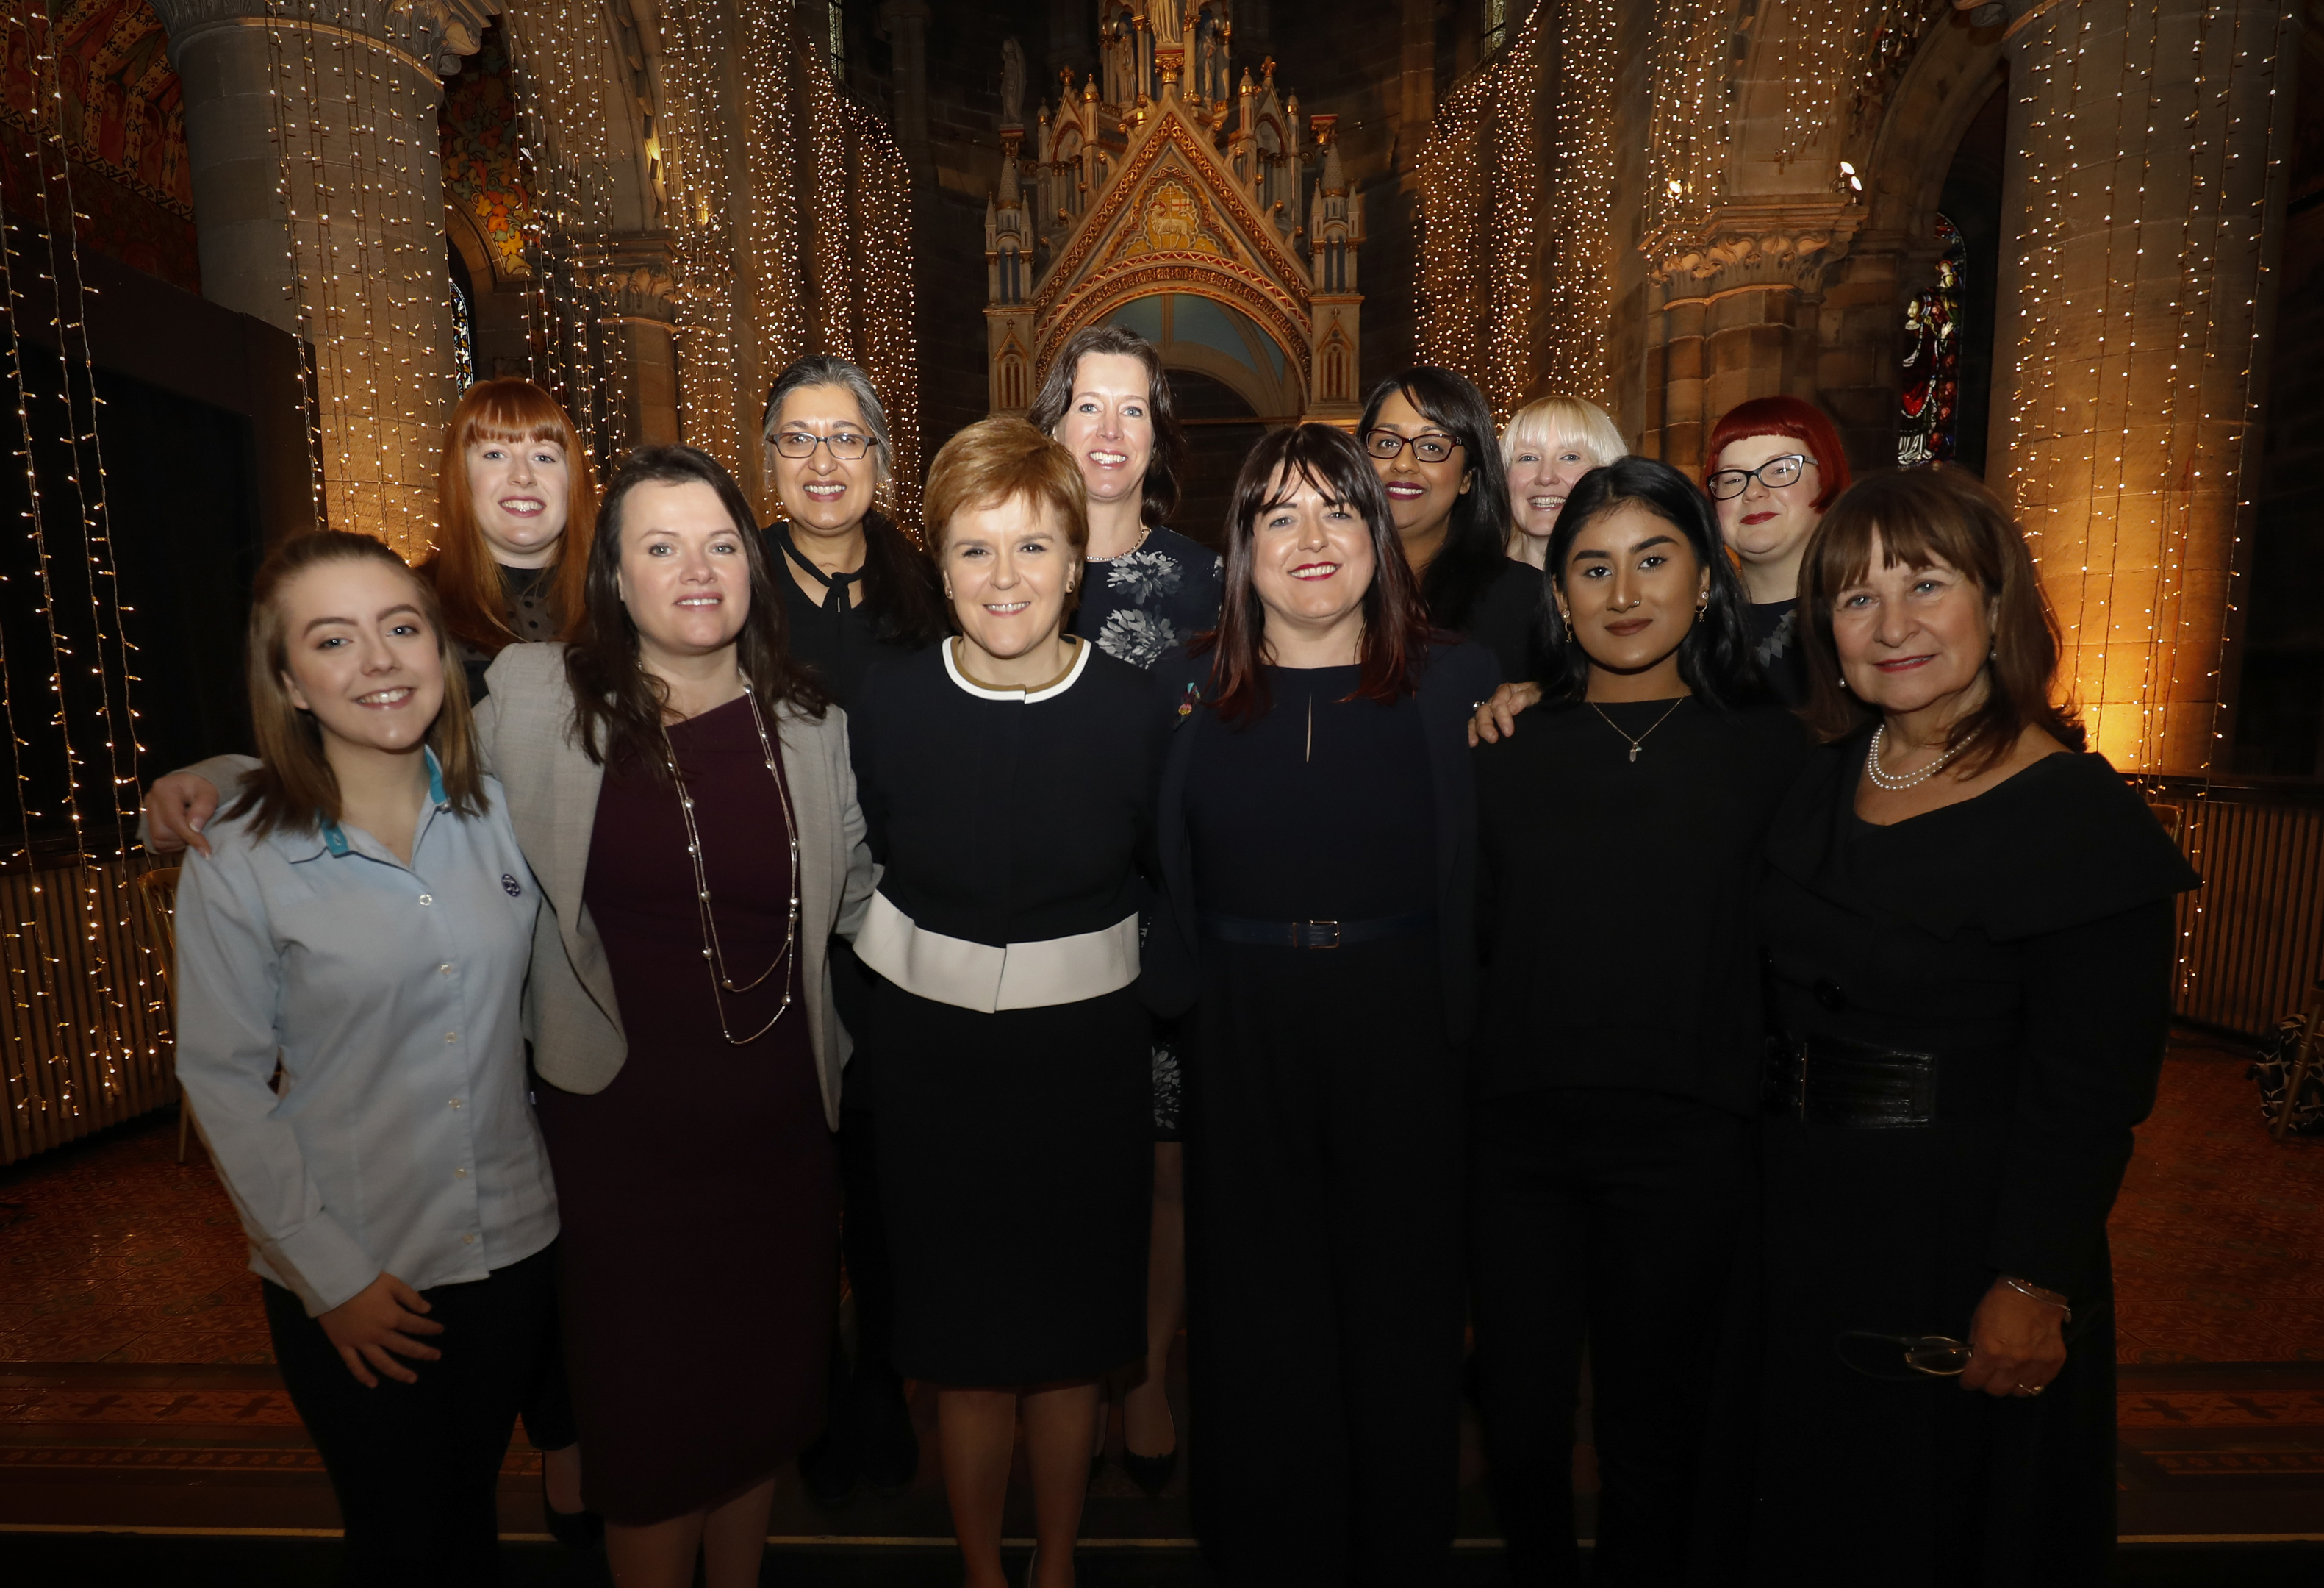 Nicola  Sturgeon with Advisory Council for Women and Girls (Scottish Government)